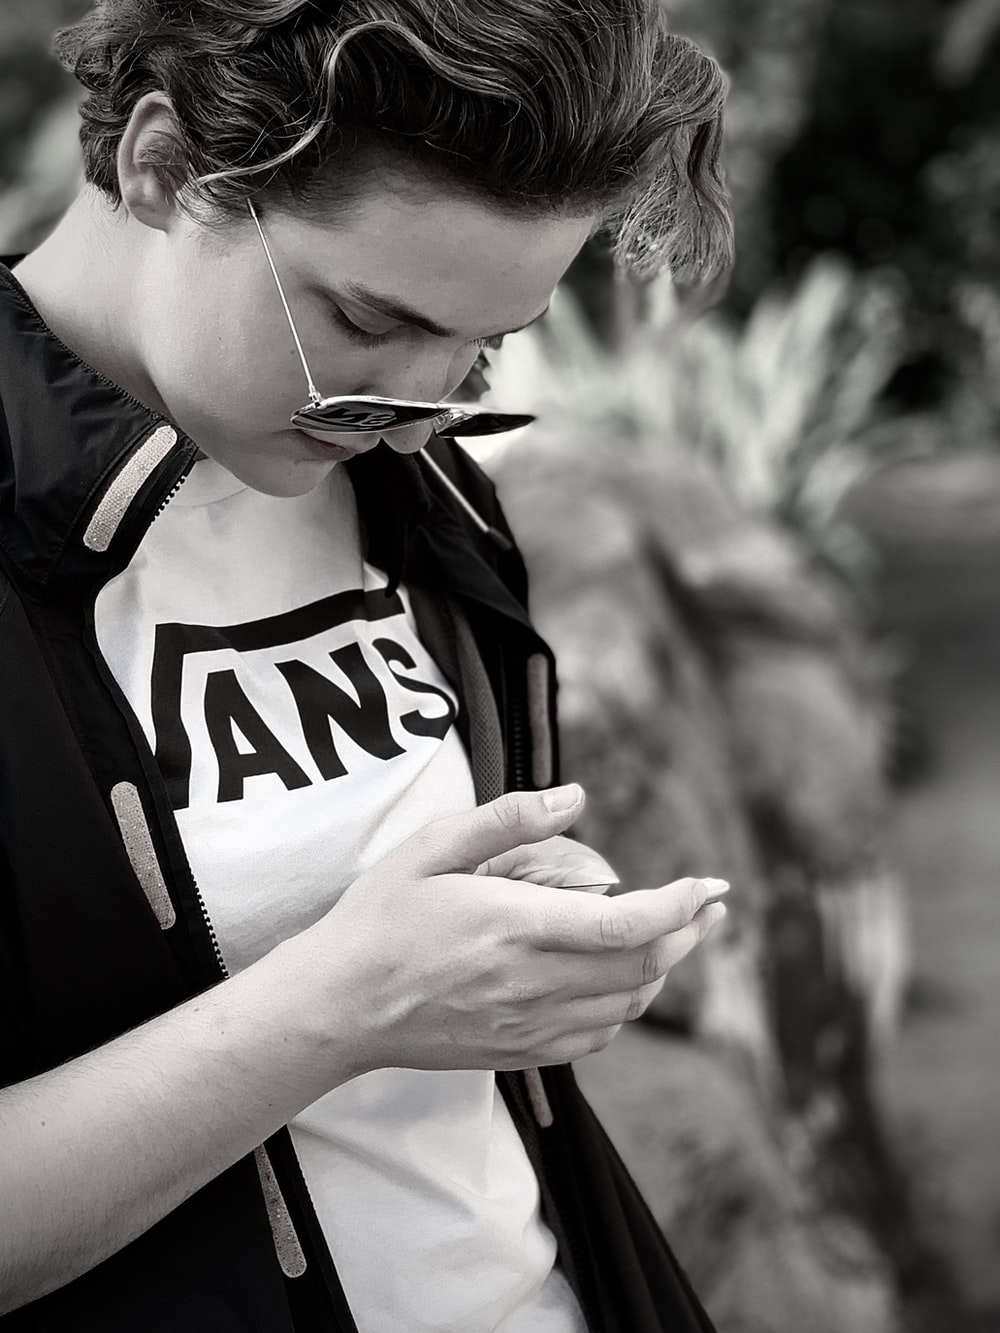 woman in black and white shirt holding smartphone